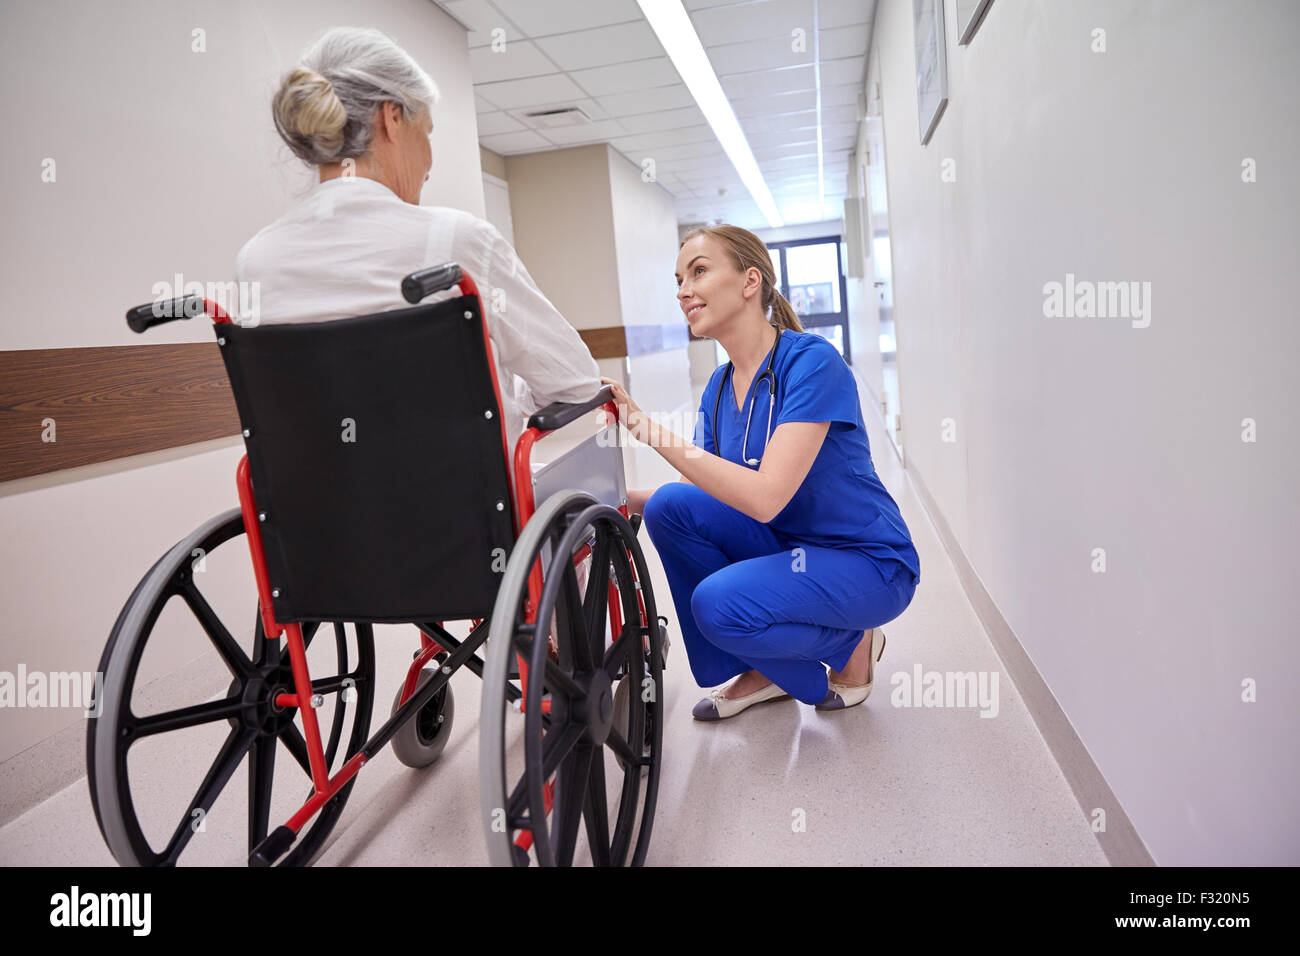 nurse with senior woman in wheelchair at hospital - Stock Image